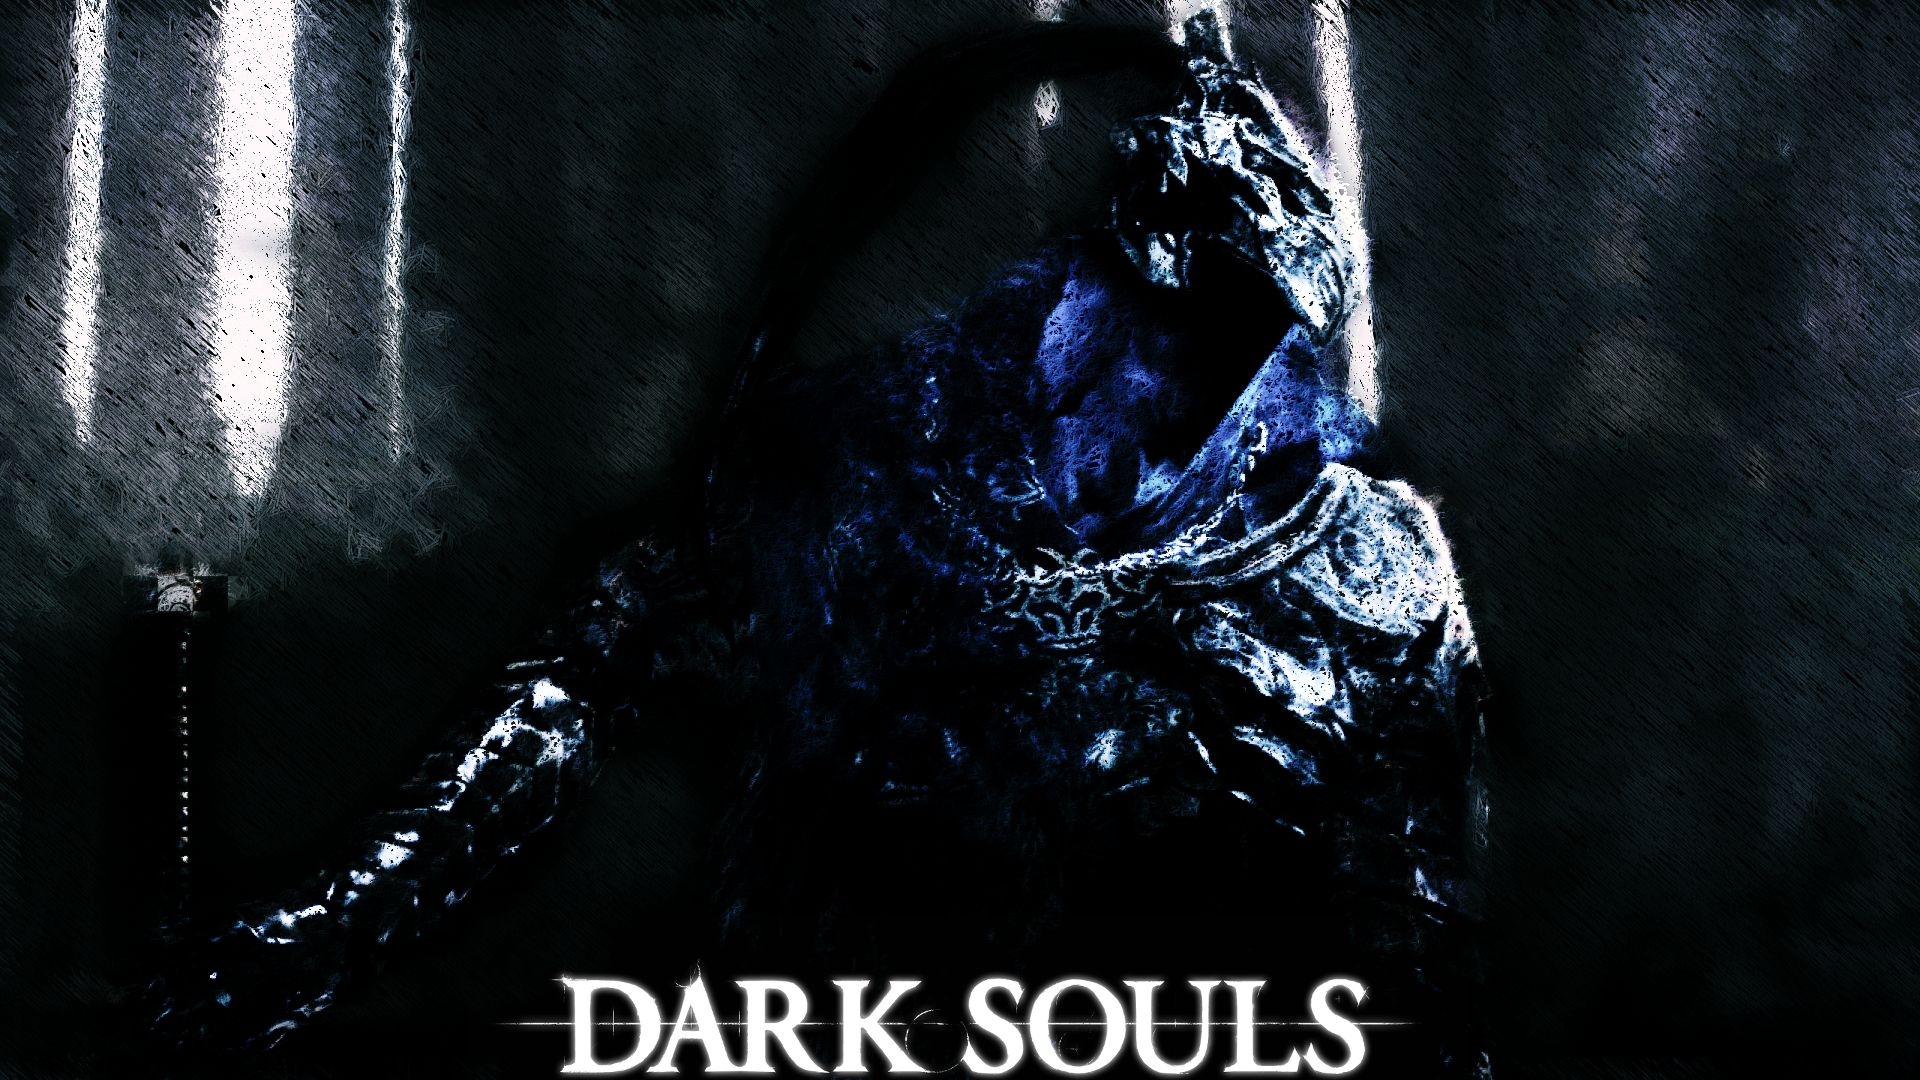 dark souls artorias wallpaper by dragunowx customization wallpaper    Dark Souls Seath Wallpaper